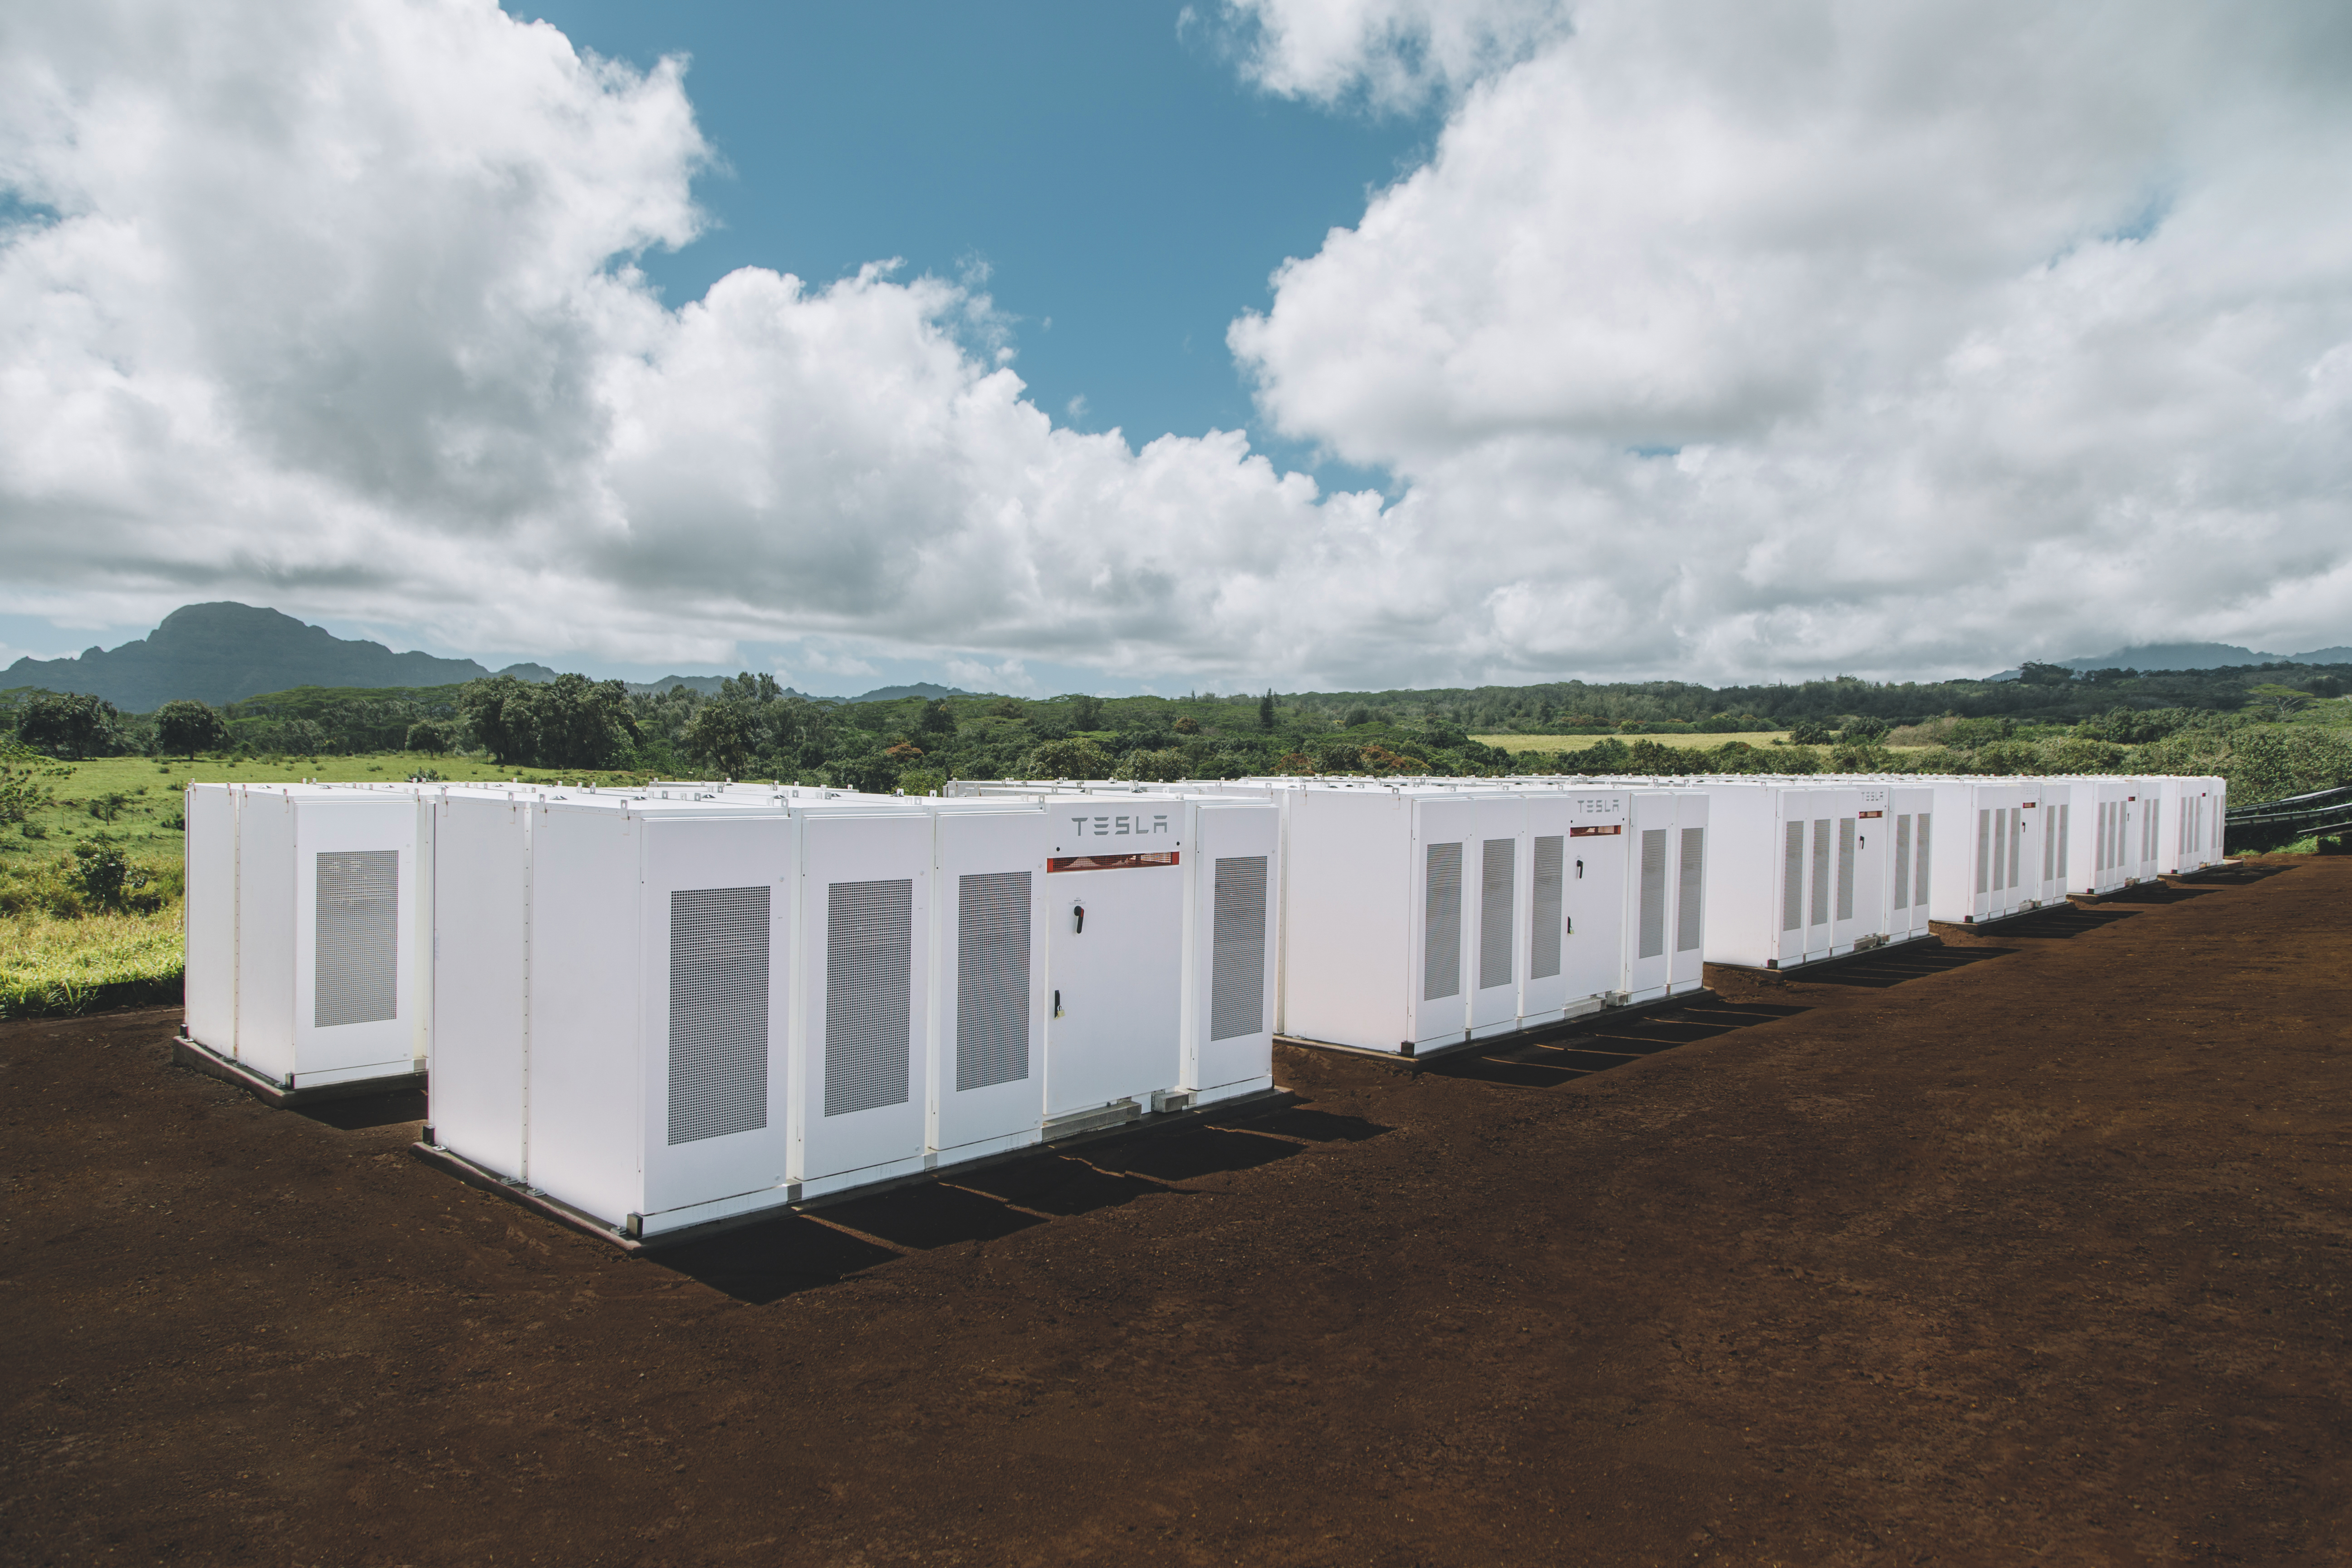 A total of 272 Tesla Powerpack lithium-ion batteries provide for 52 megawatt hours of solar dispatch during Kaua'i's evening peak